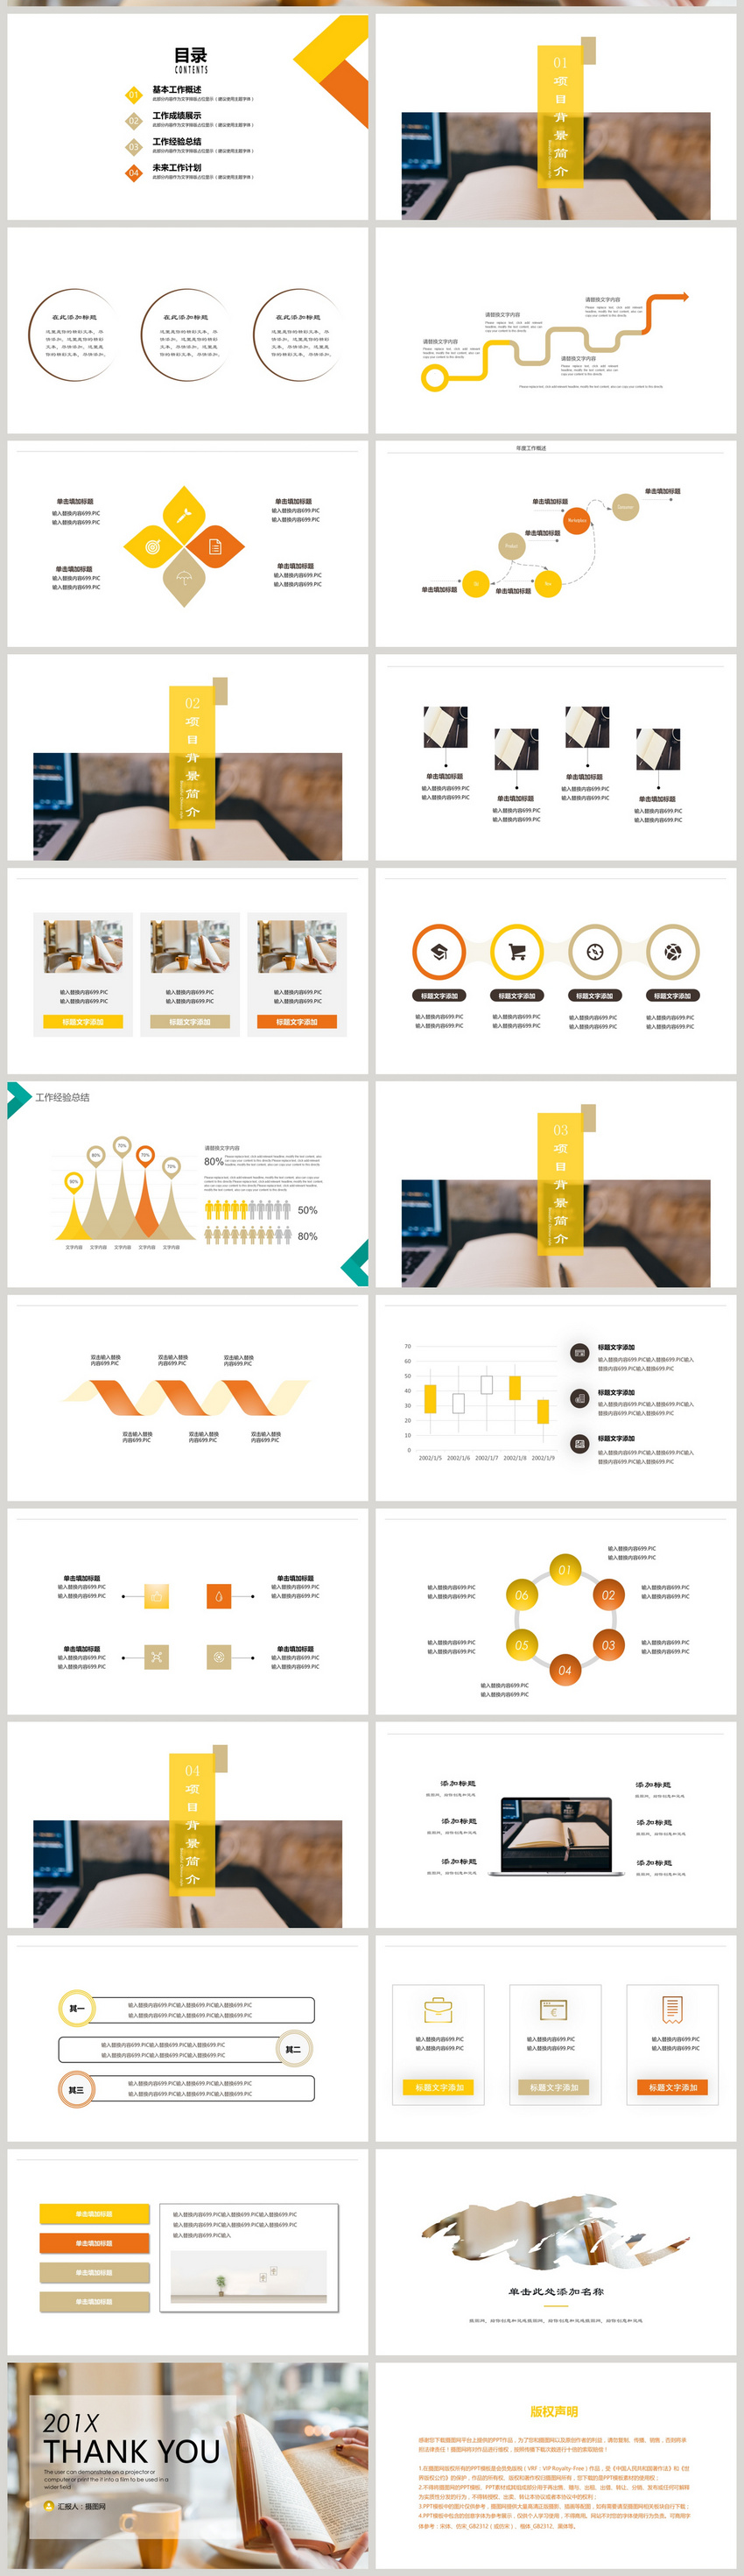 simple book notes ppt template powerpoint templete ppt free download